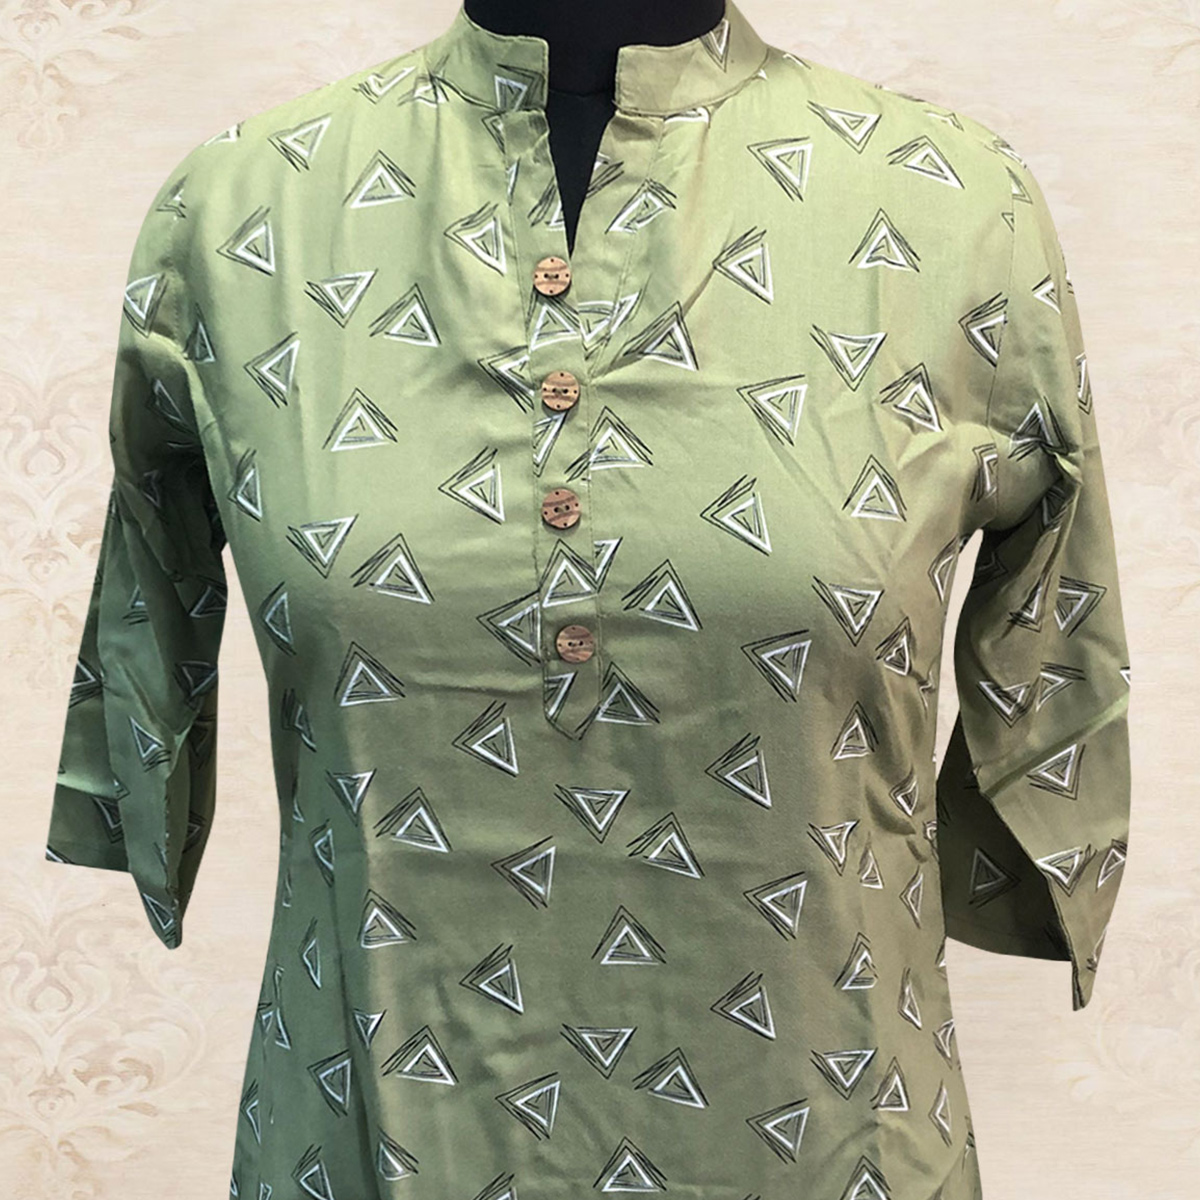 Charming Light Green Colored Casual Printed Cotton Top